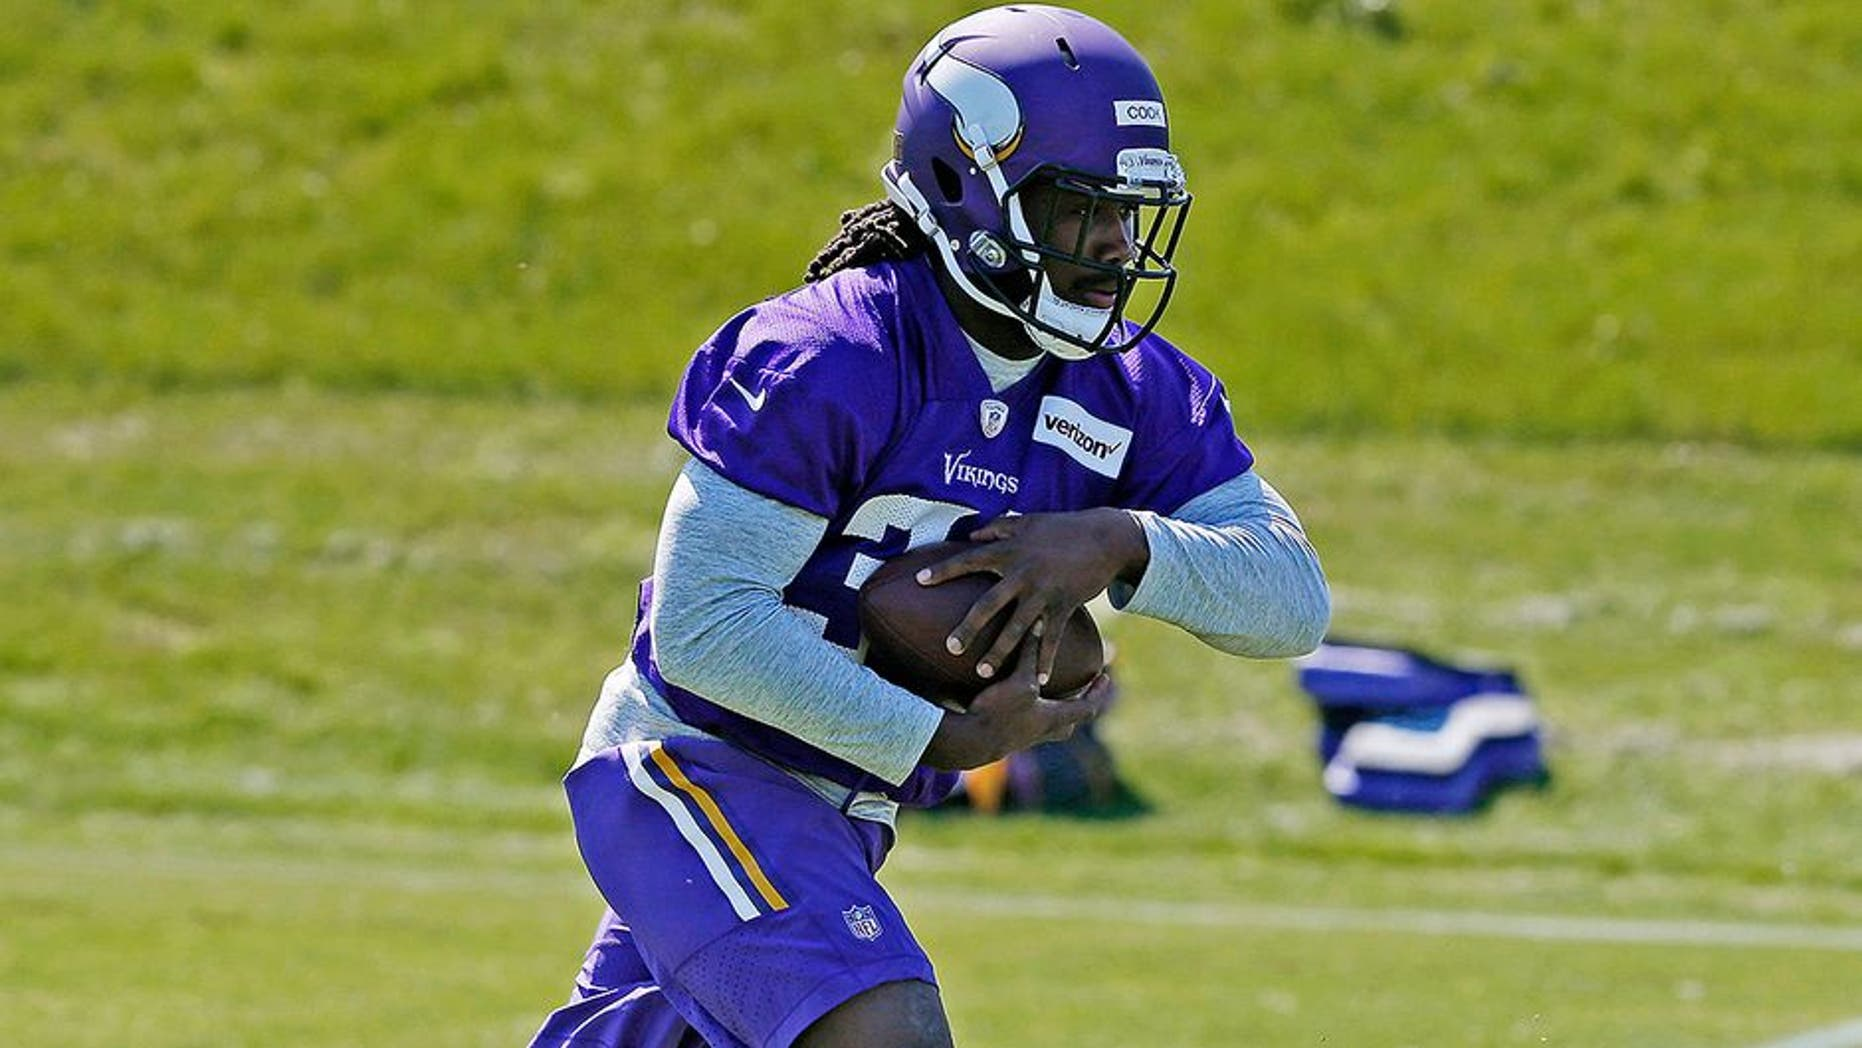 Minnesota Vikings rookie running back Dalvin Cook, right, takes a handoff from quarterback Wes Lunt during the NFL football team's rookies minicamp Friday, May 5, 2017, in Eden Prairie, Minn. (AP Photo/Jim Mone)